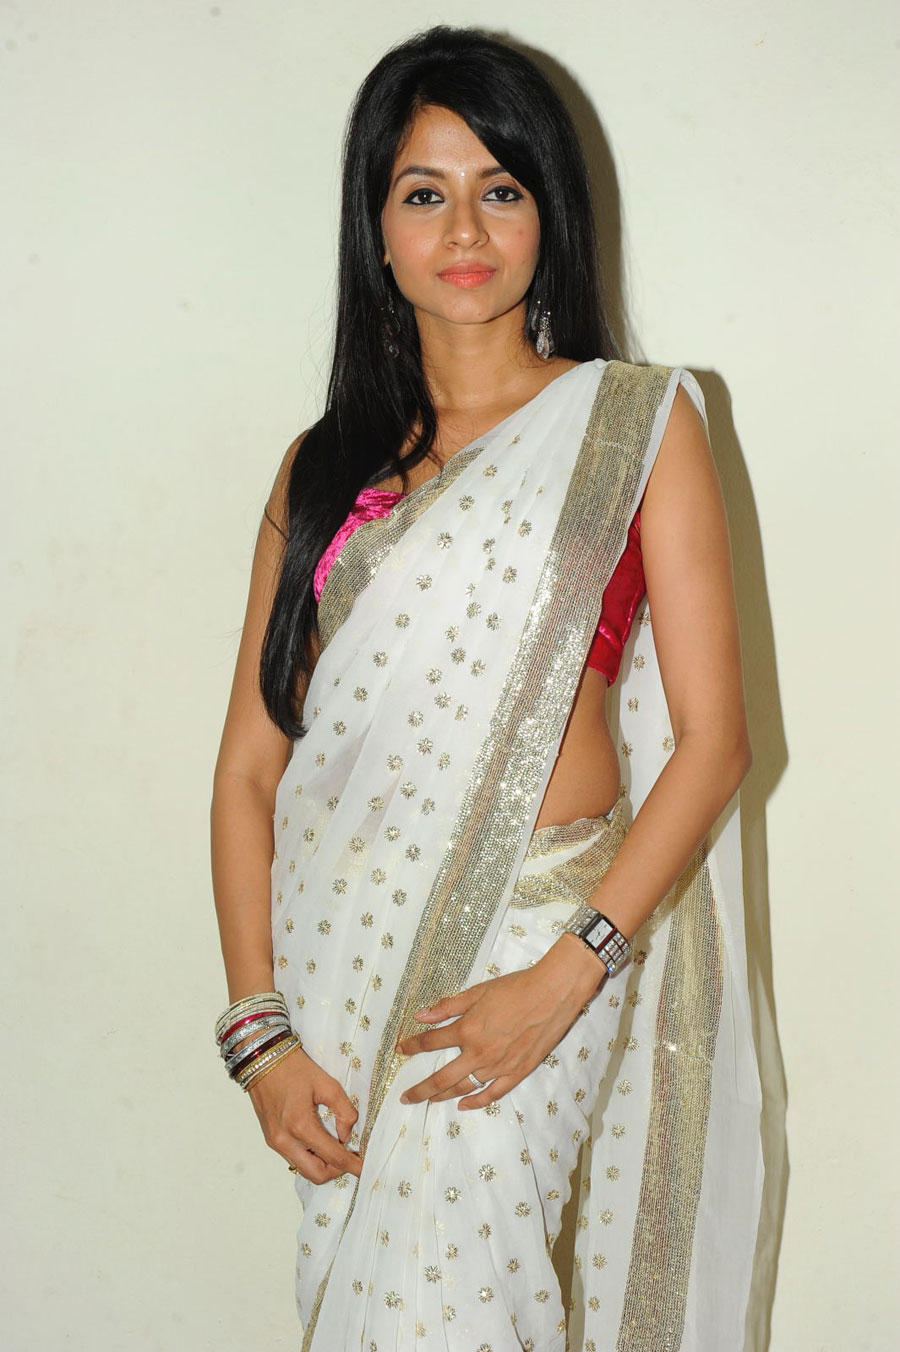 New Face Amrutha in Saree Photo Gallery Amruth17